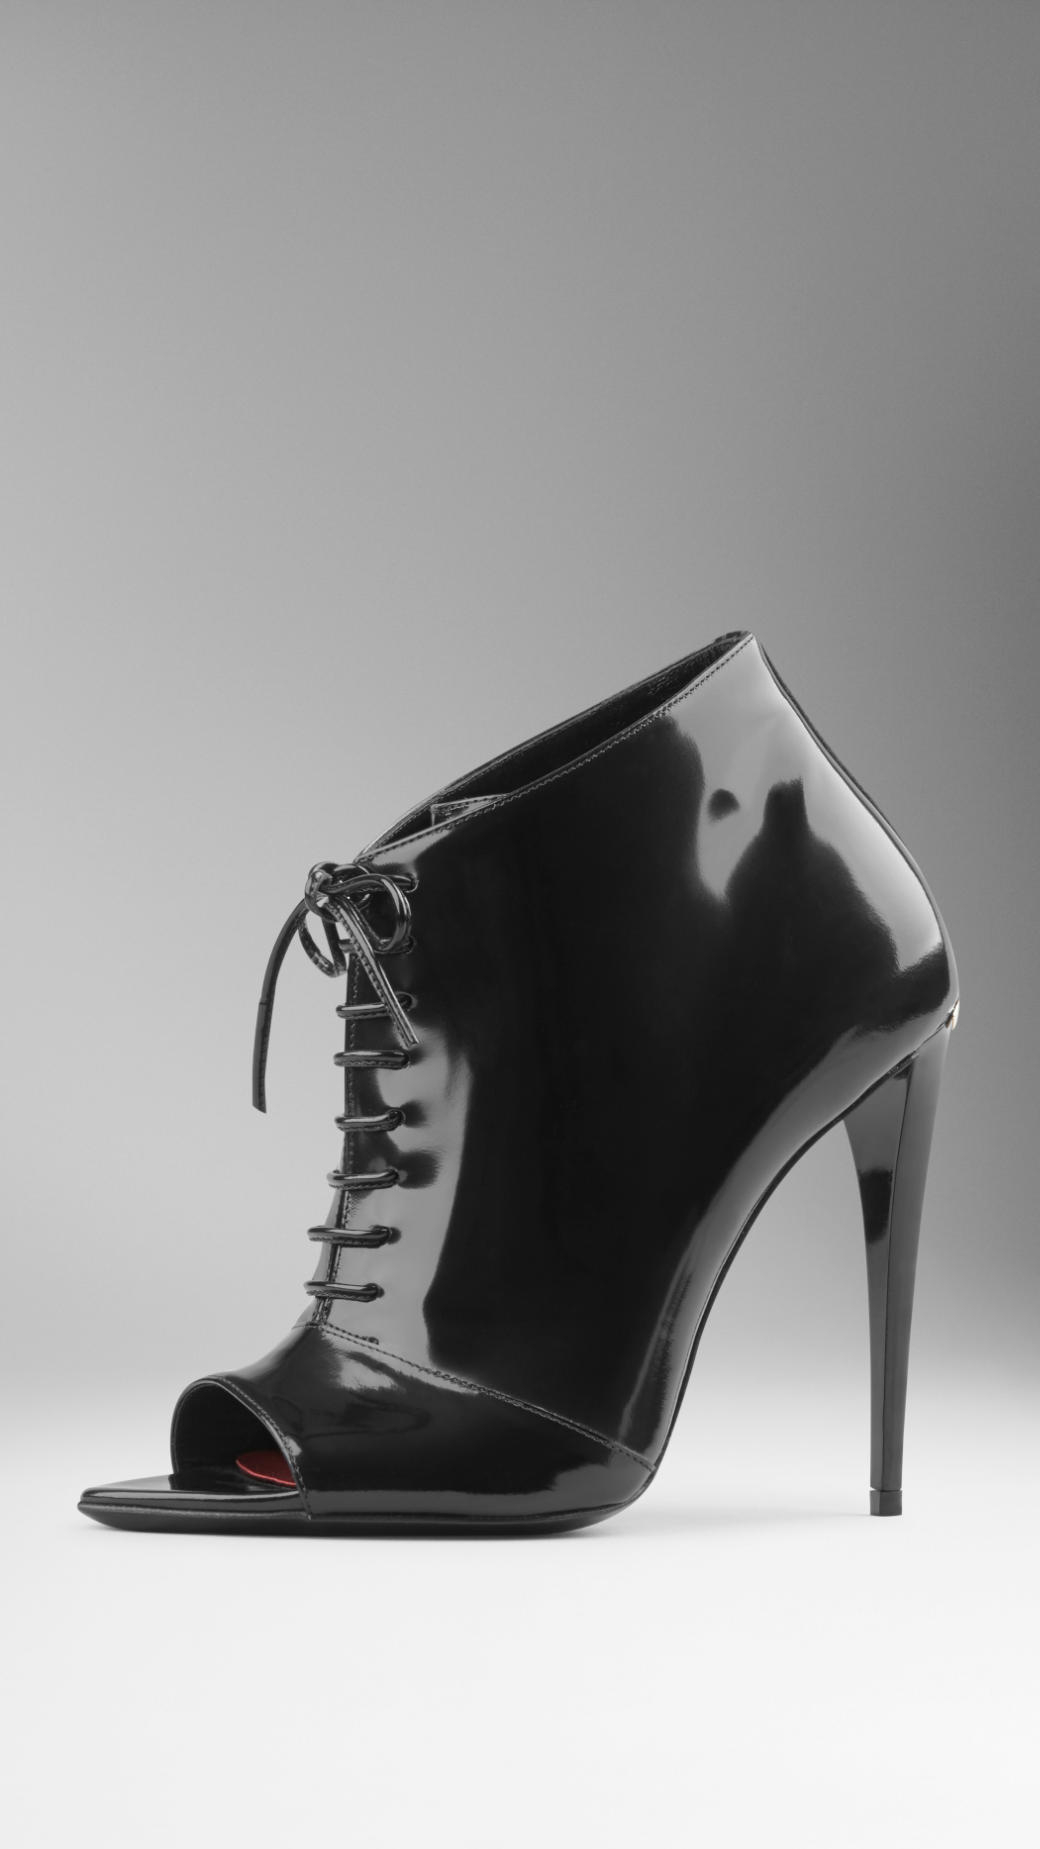 Lyst - Burberry Patent Leather Peep-Toe Ankle Boots in Black 24a365d61